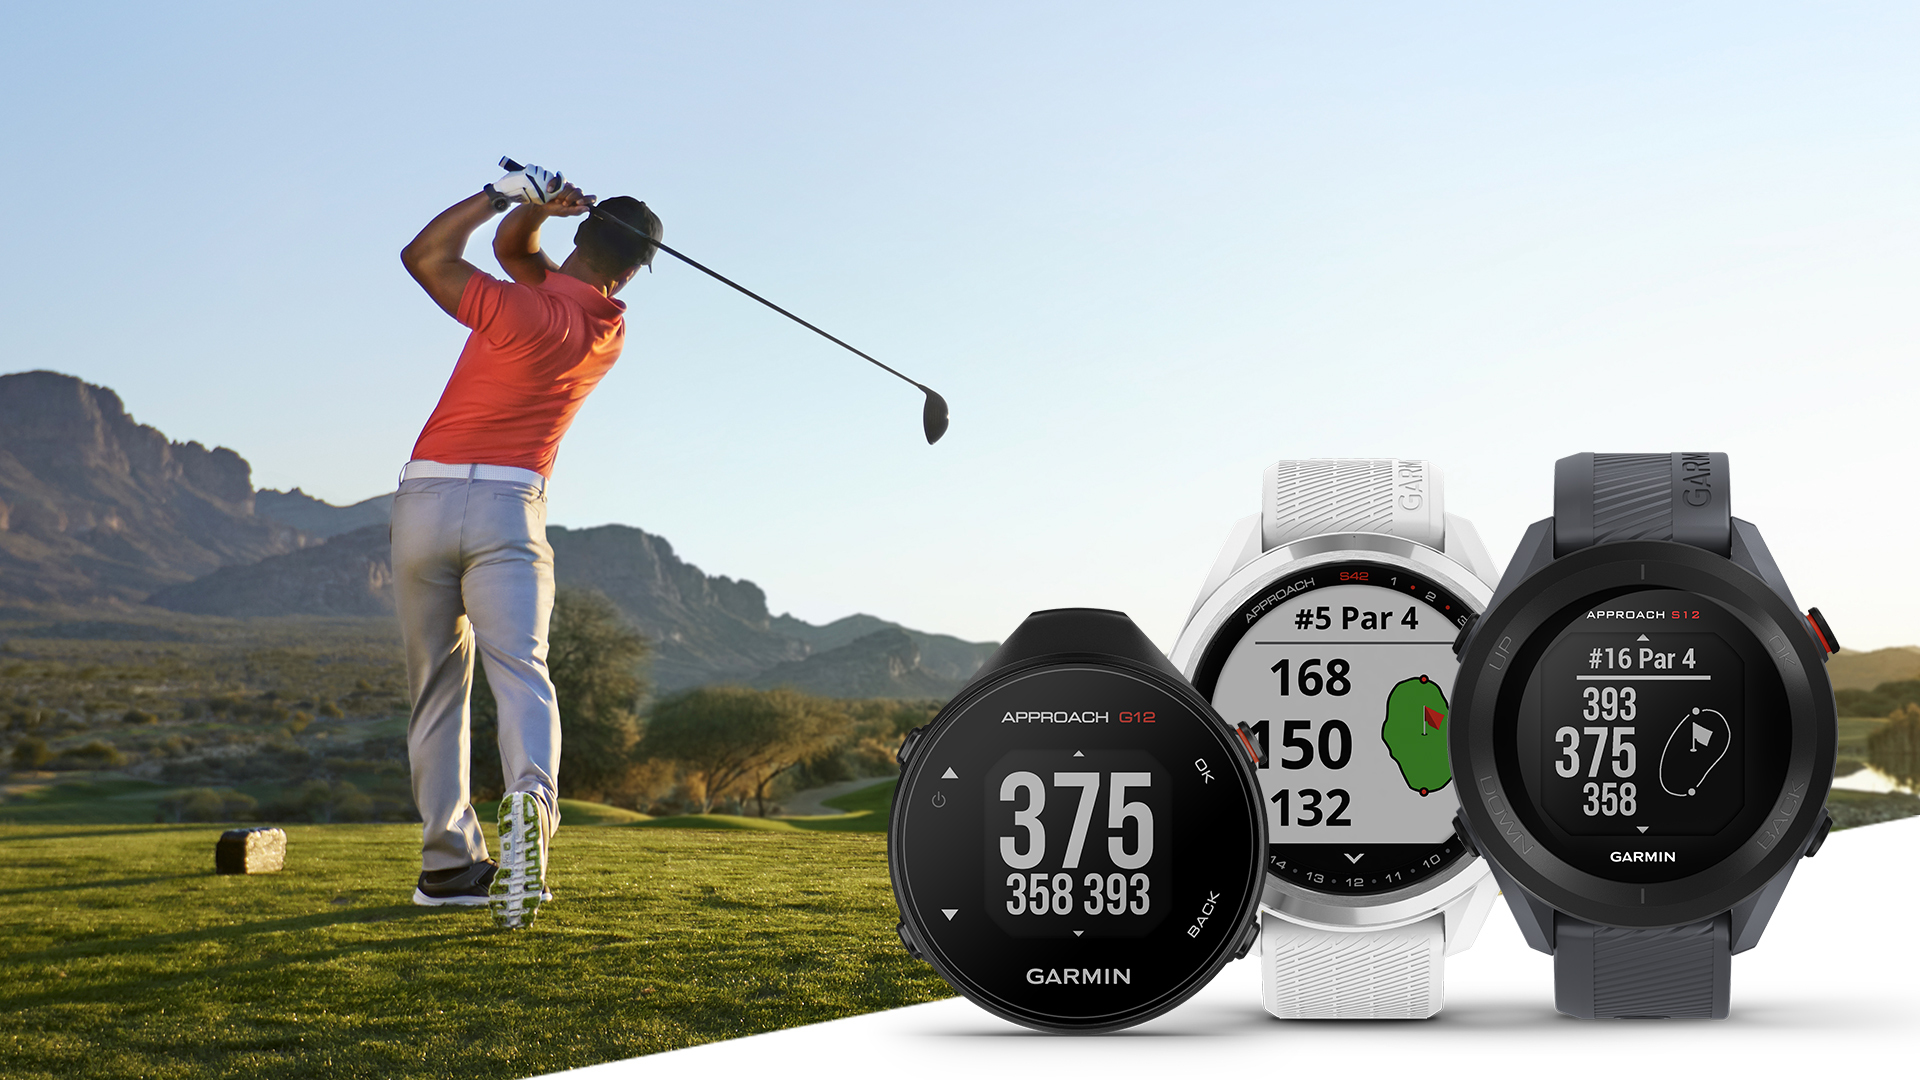 Garmin introduces new lineup of GPS devices to help golfers boost their game